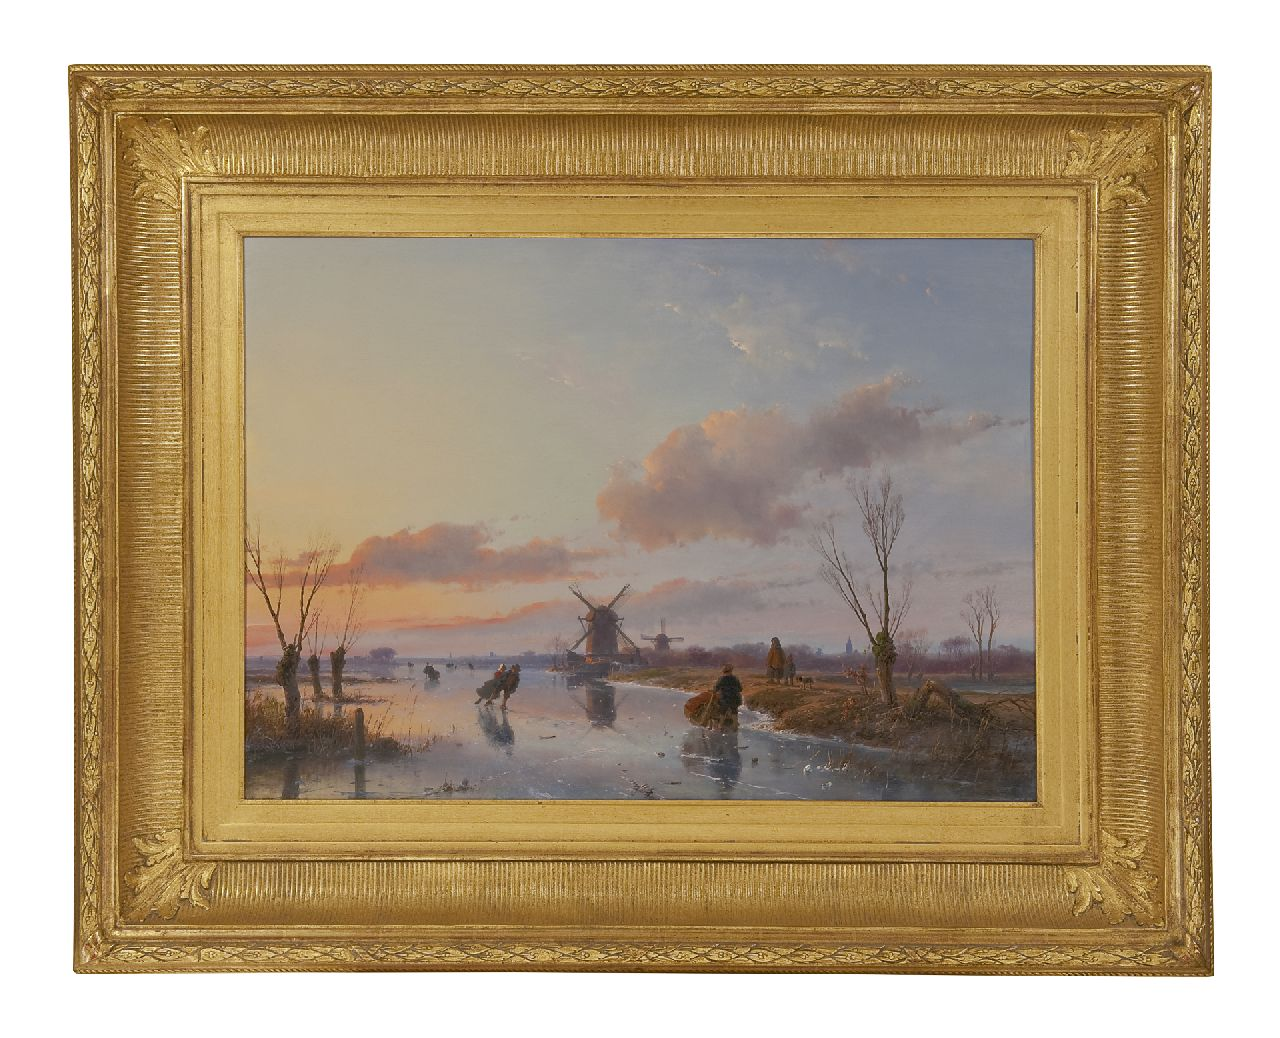 Schelfhout A.  | Andreas Schelfhout, Skaters on a Dutch waterway at sunset, oil on panel 47.1 x 66.3 cm, signed l.r. and dated 1845